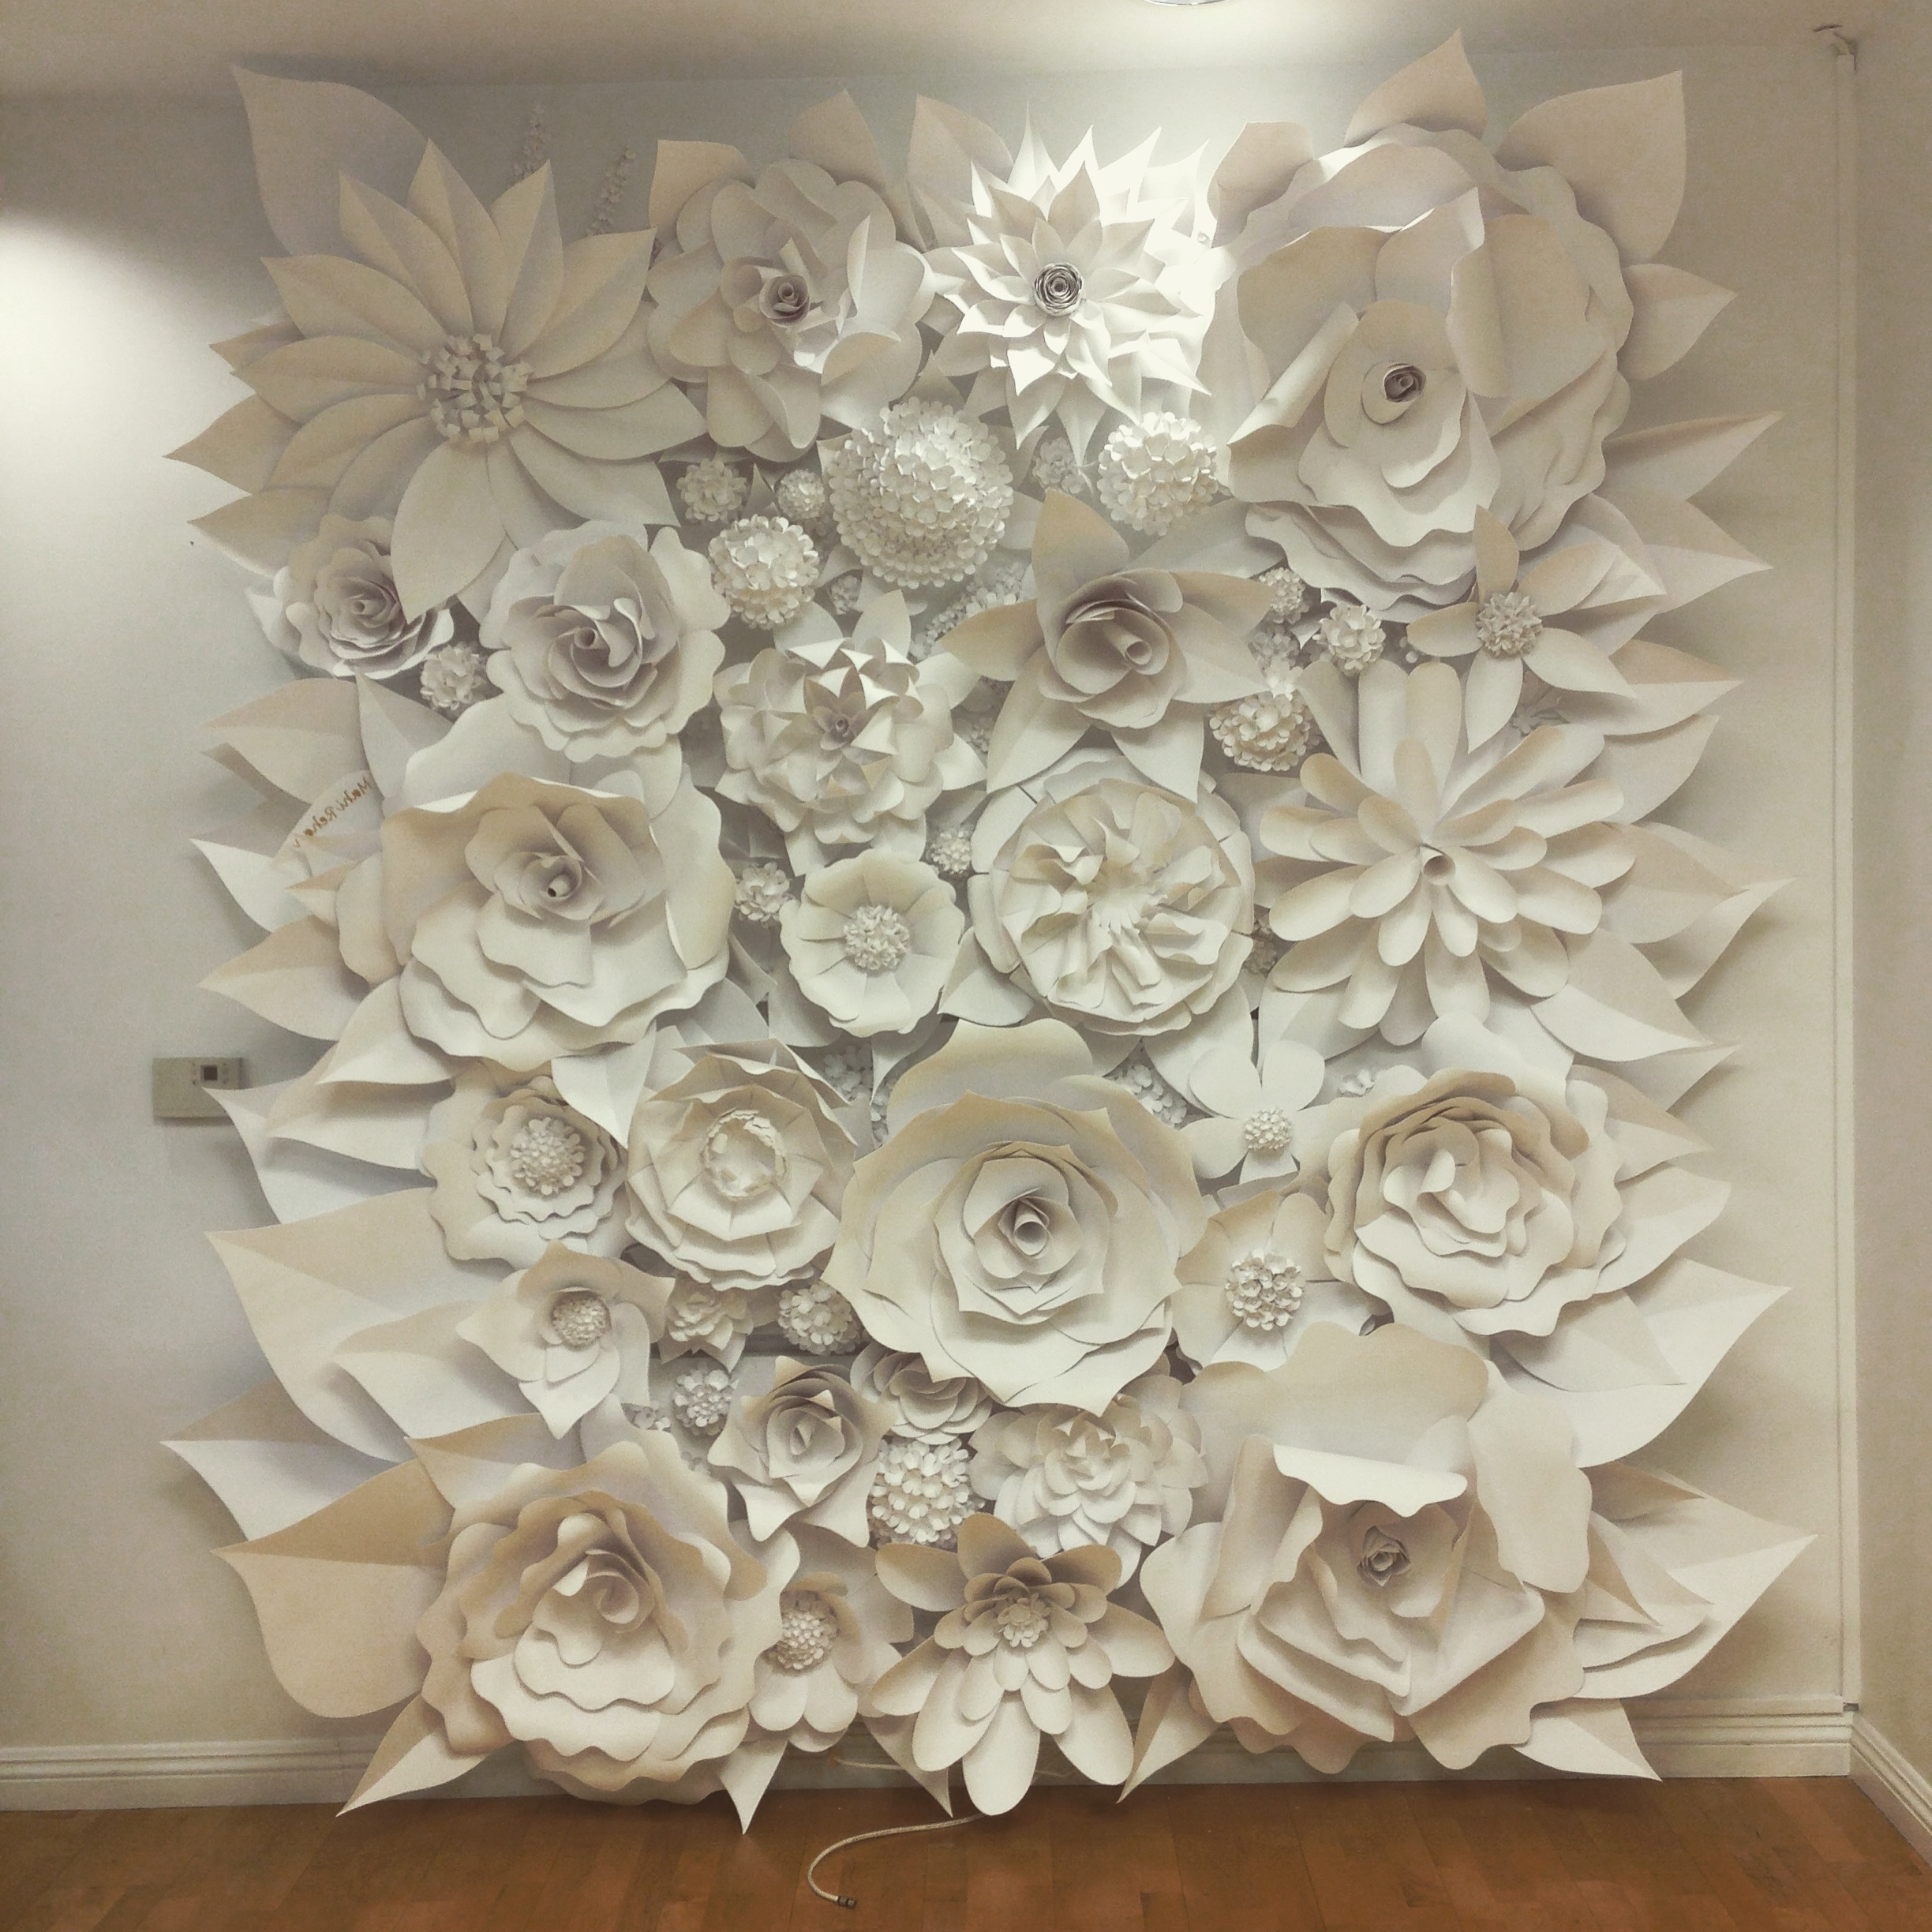 Fashionable Flowers 3D Wall Art Within Diy 3D Flower Canvas Wall Art Diy Mothers Day Gift Youtube (View 8 of 15)